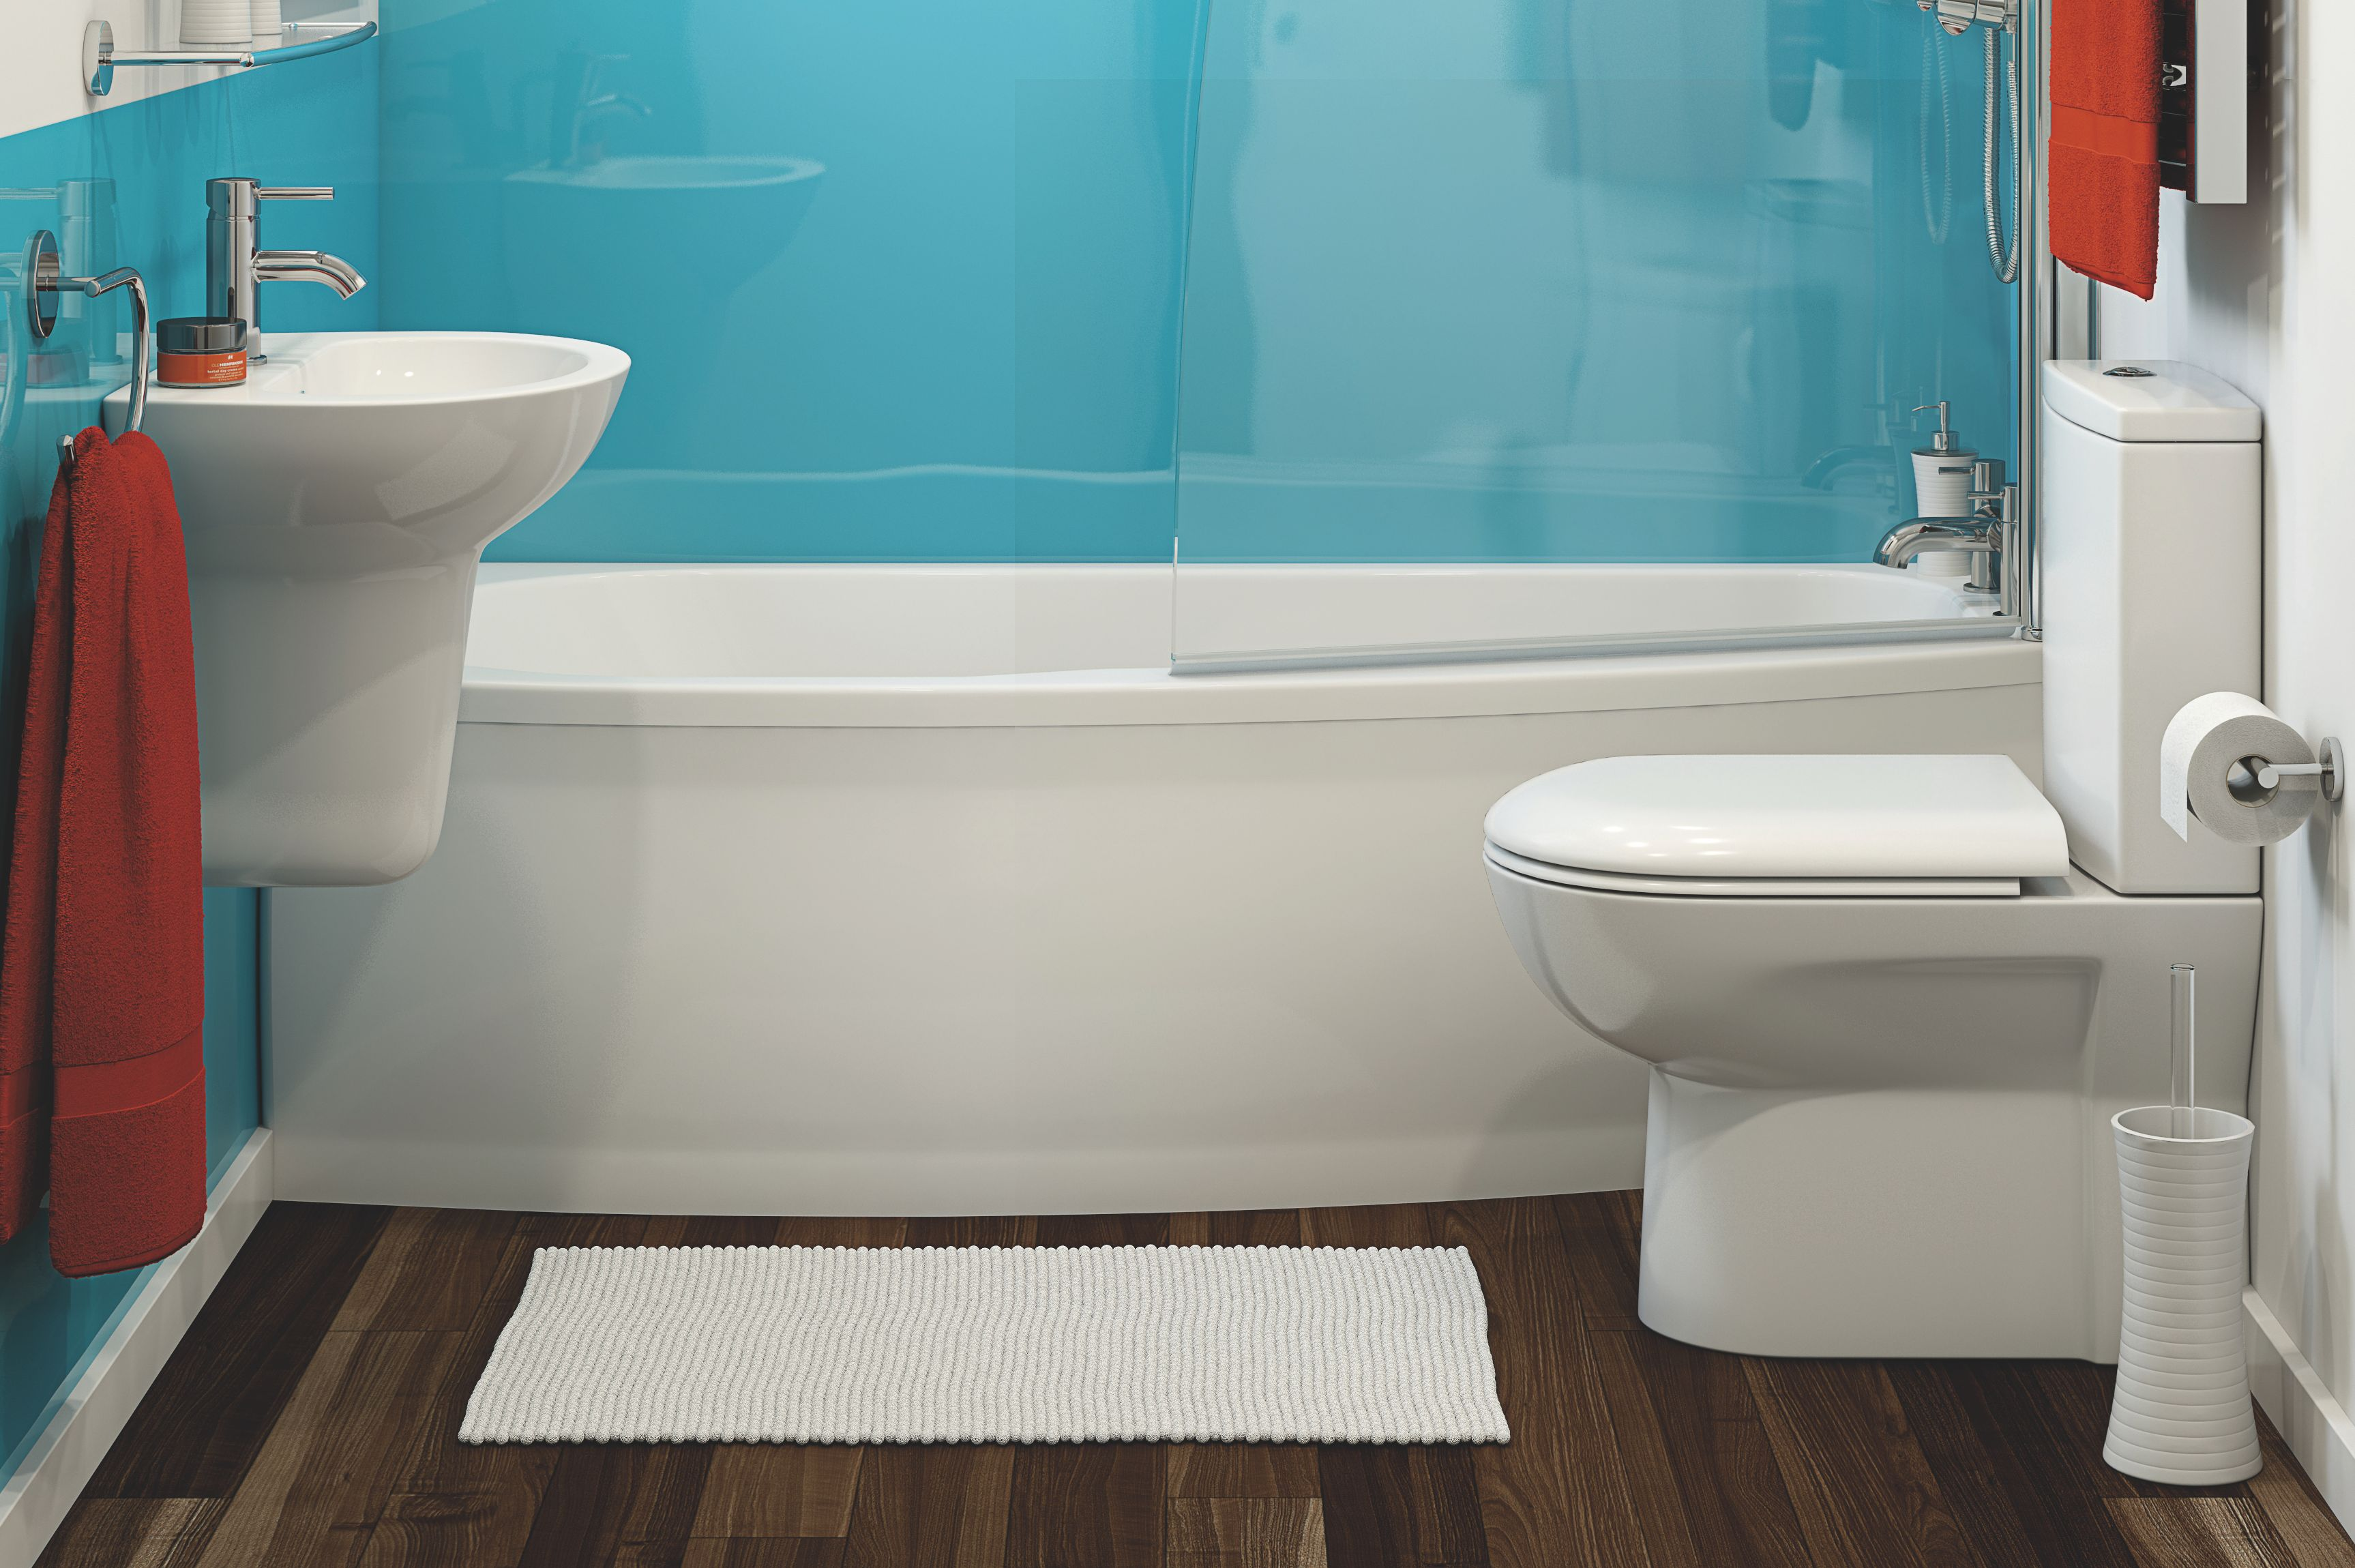 RETHINKING THE MODERN DAY BATHROOM: An insightful look at our modern ...